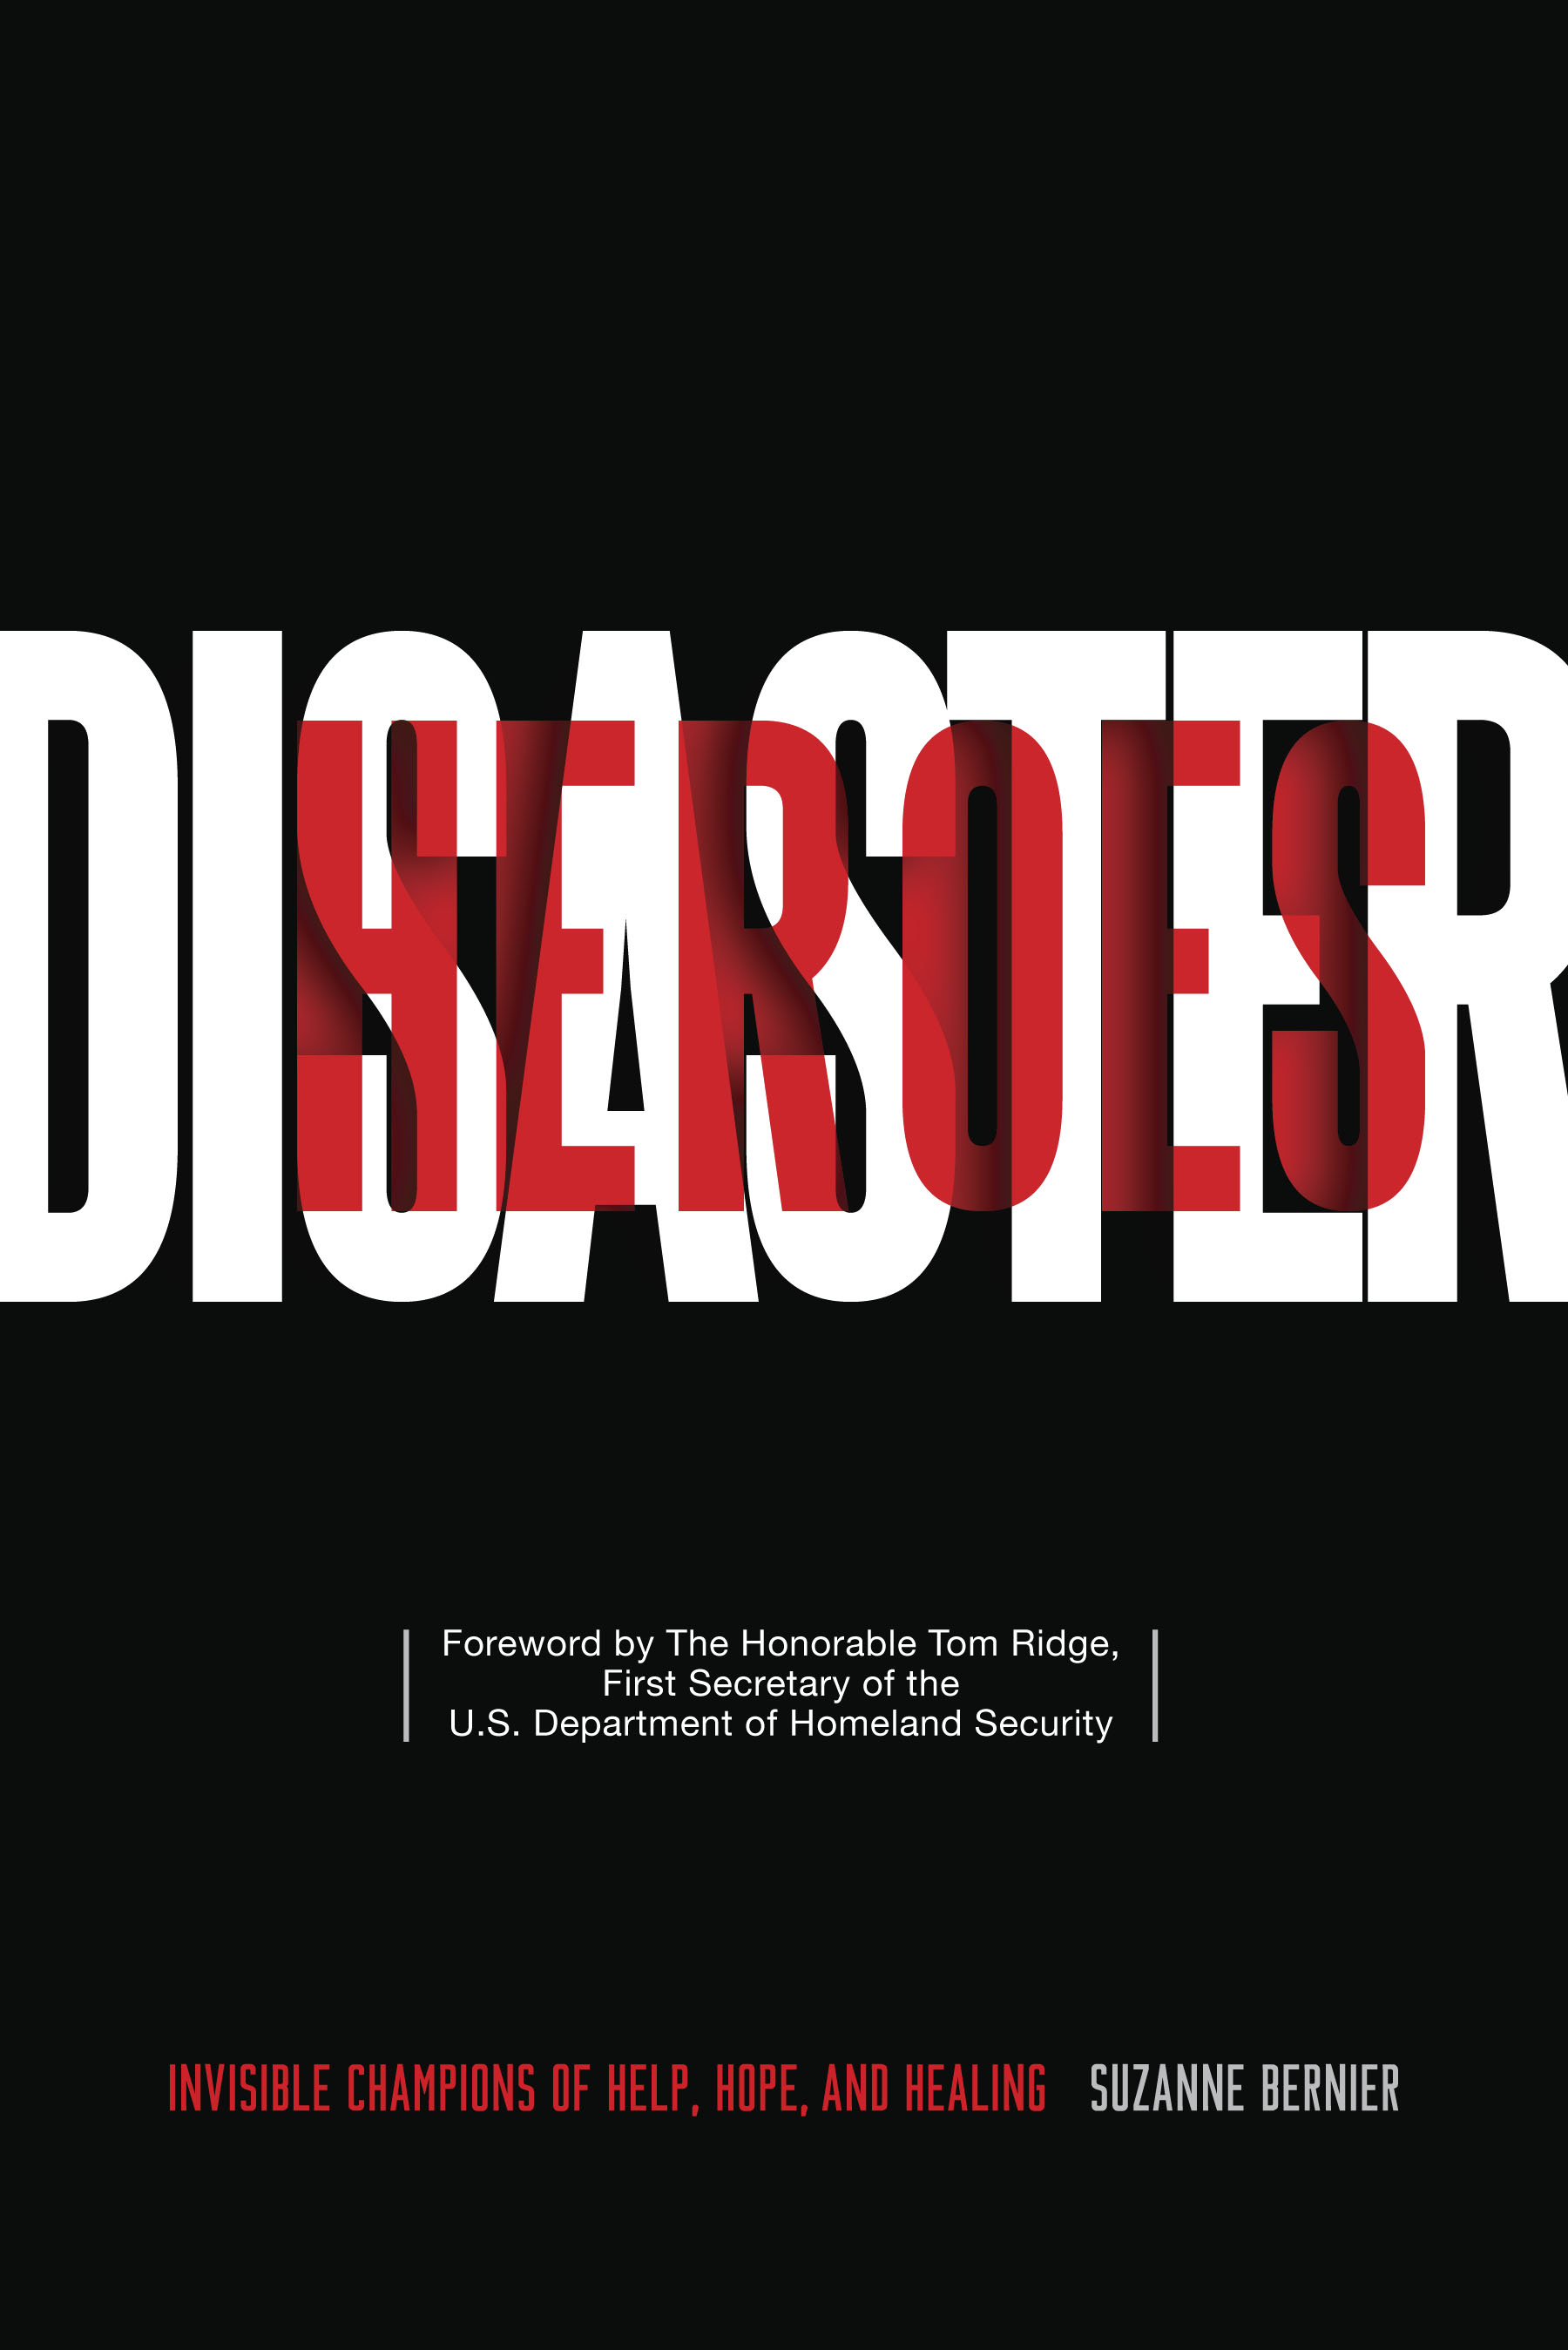 Disaster Heroes final book cover